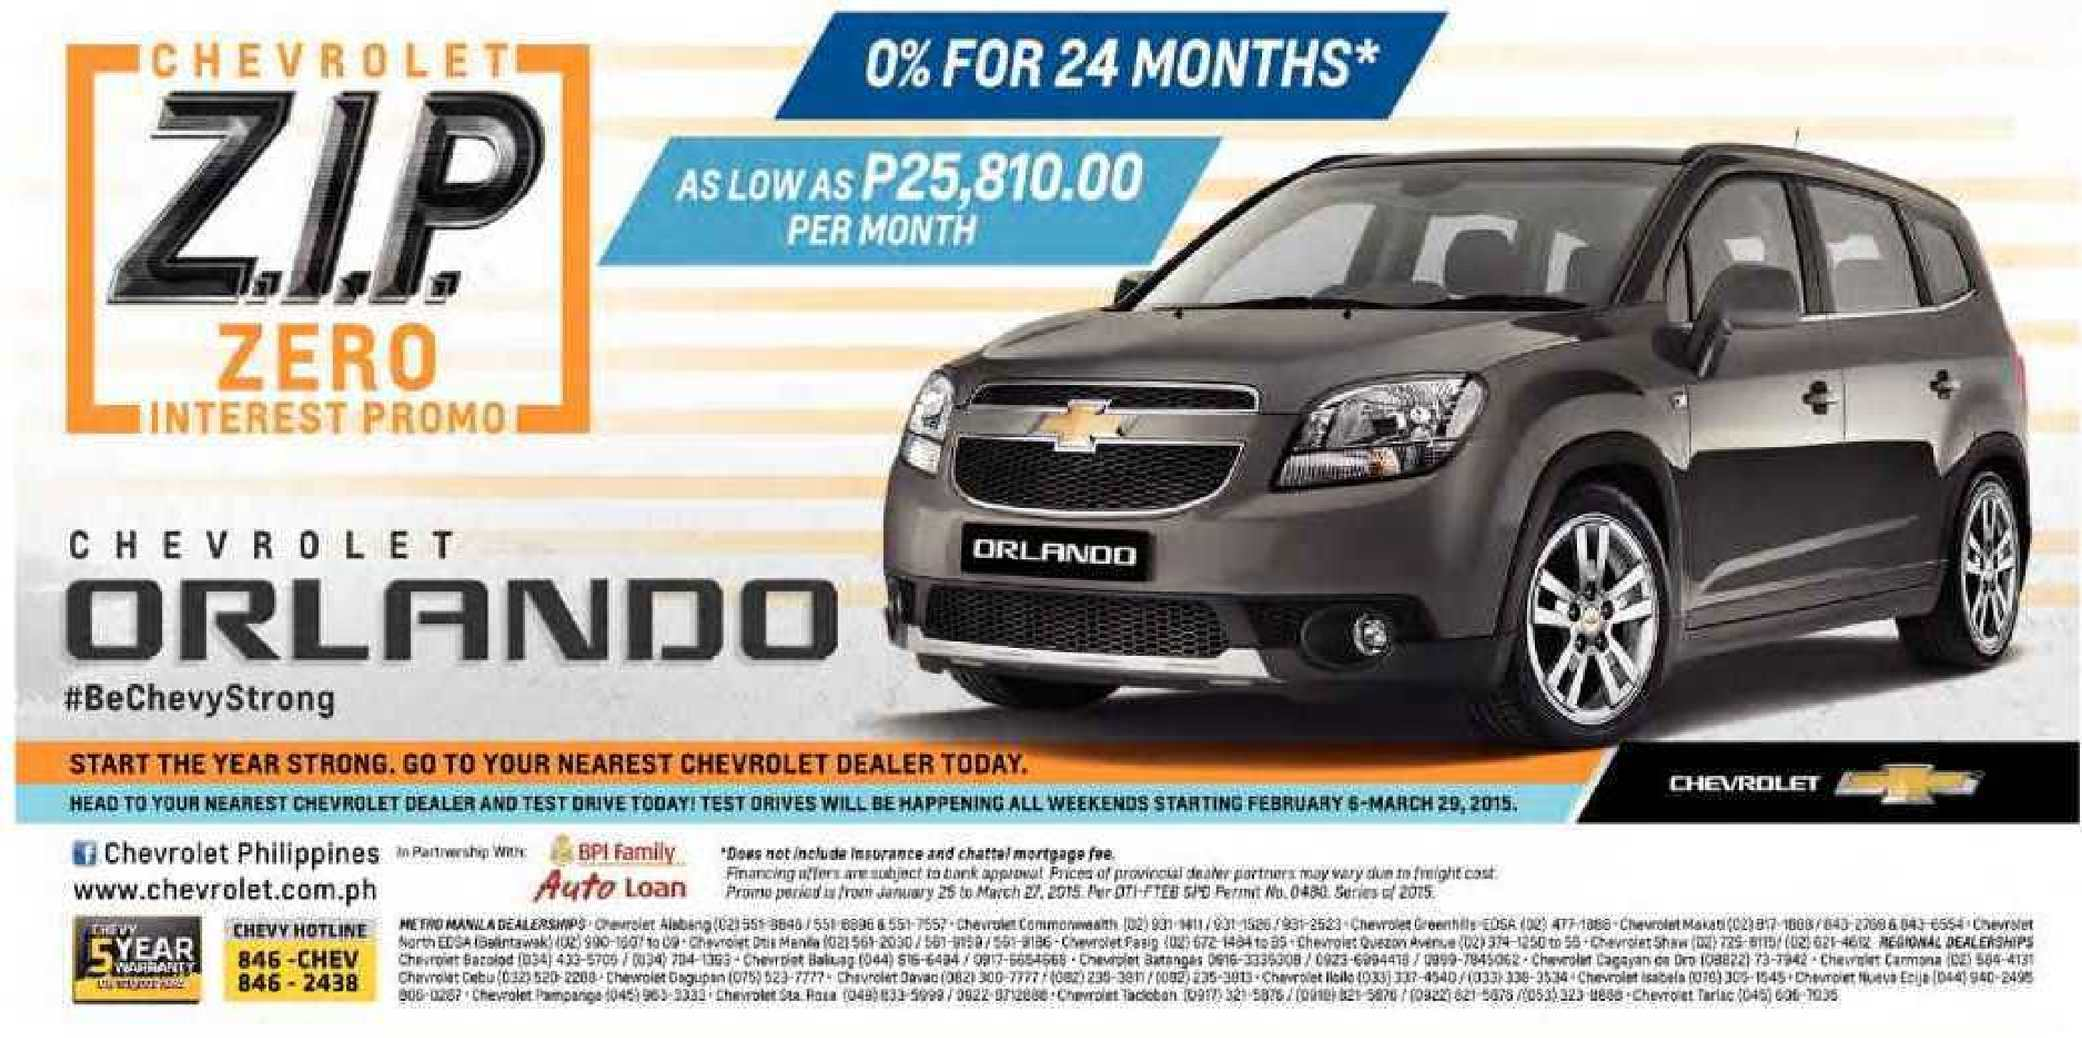 Calameo Chevrolet Orlando For As Low As P25810per Month From February 6 To March 29 201559848 59848